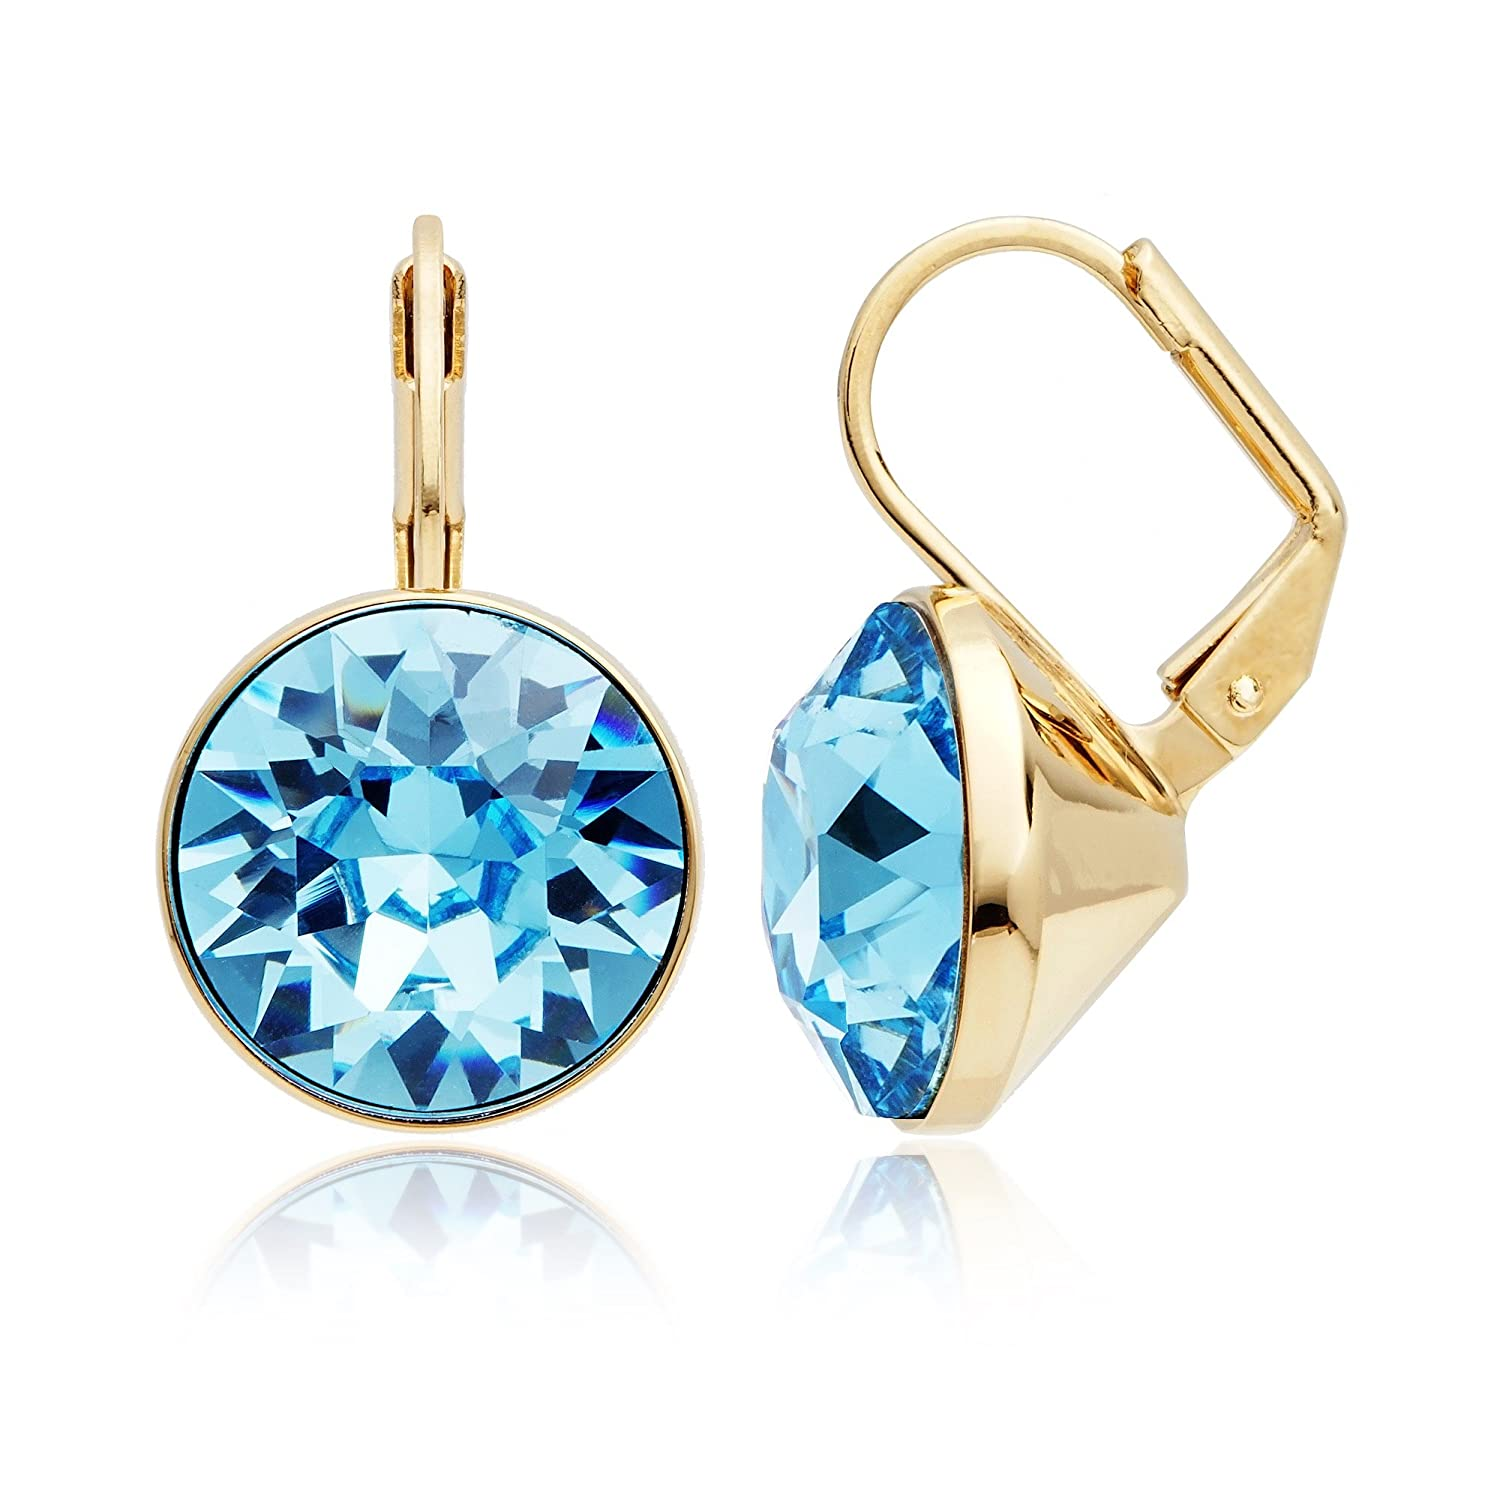 670ebd05d26d Amazon.com  Bella Earrings with 8.5 Carat Aquamarine Swarovski Crystals  Gold Plated  Jewelry